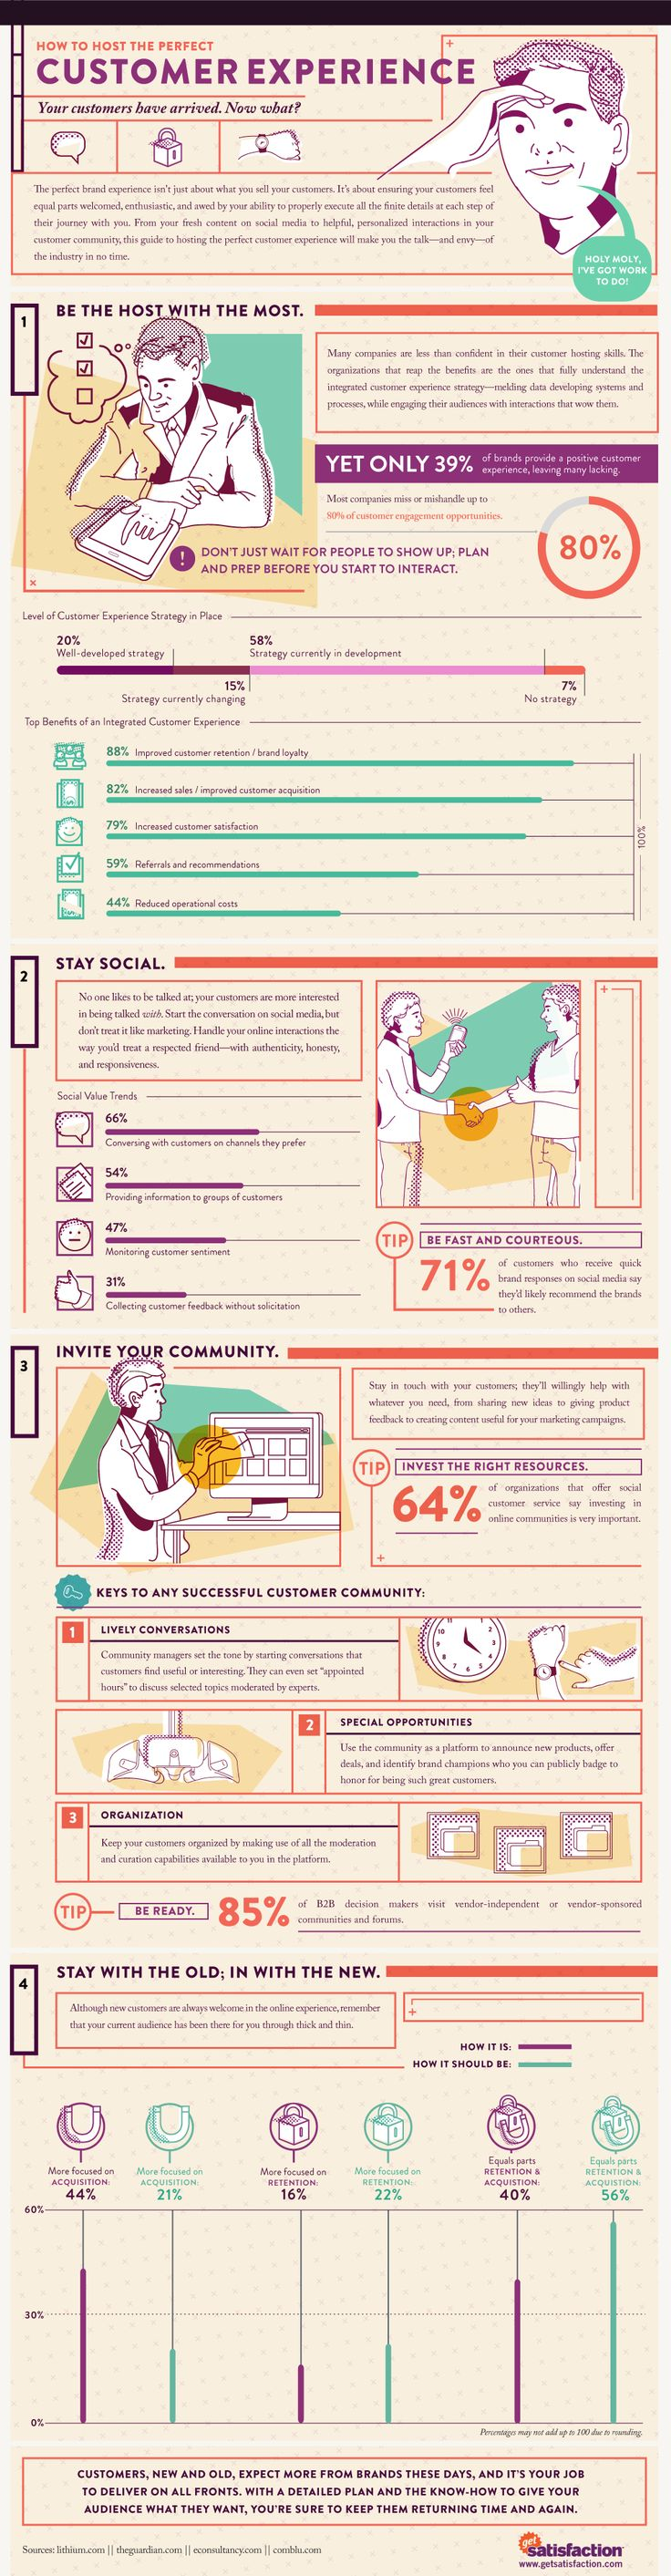 best images about cxo infographics churn rate give customers what they want optimizing the customer experience image infographic final perfectcustomerexperience2 copy